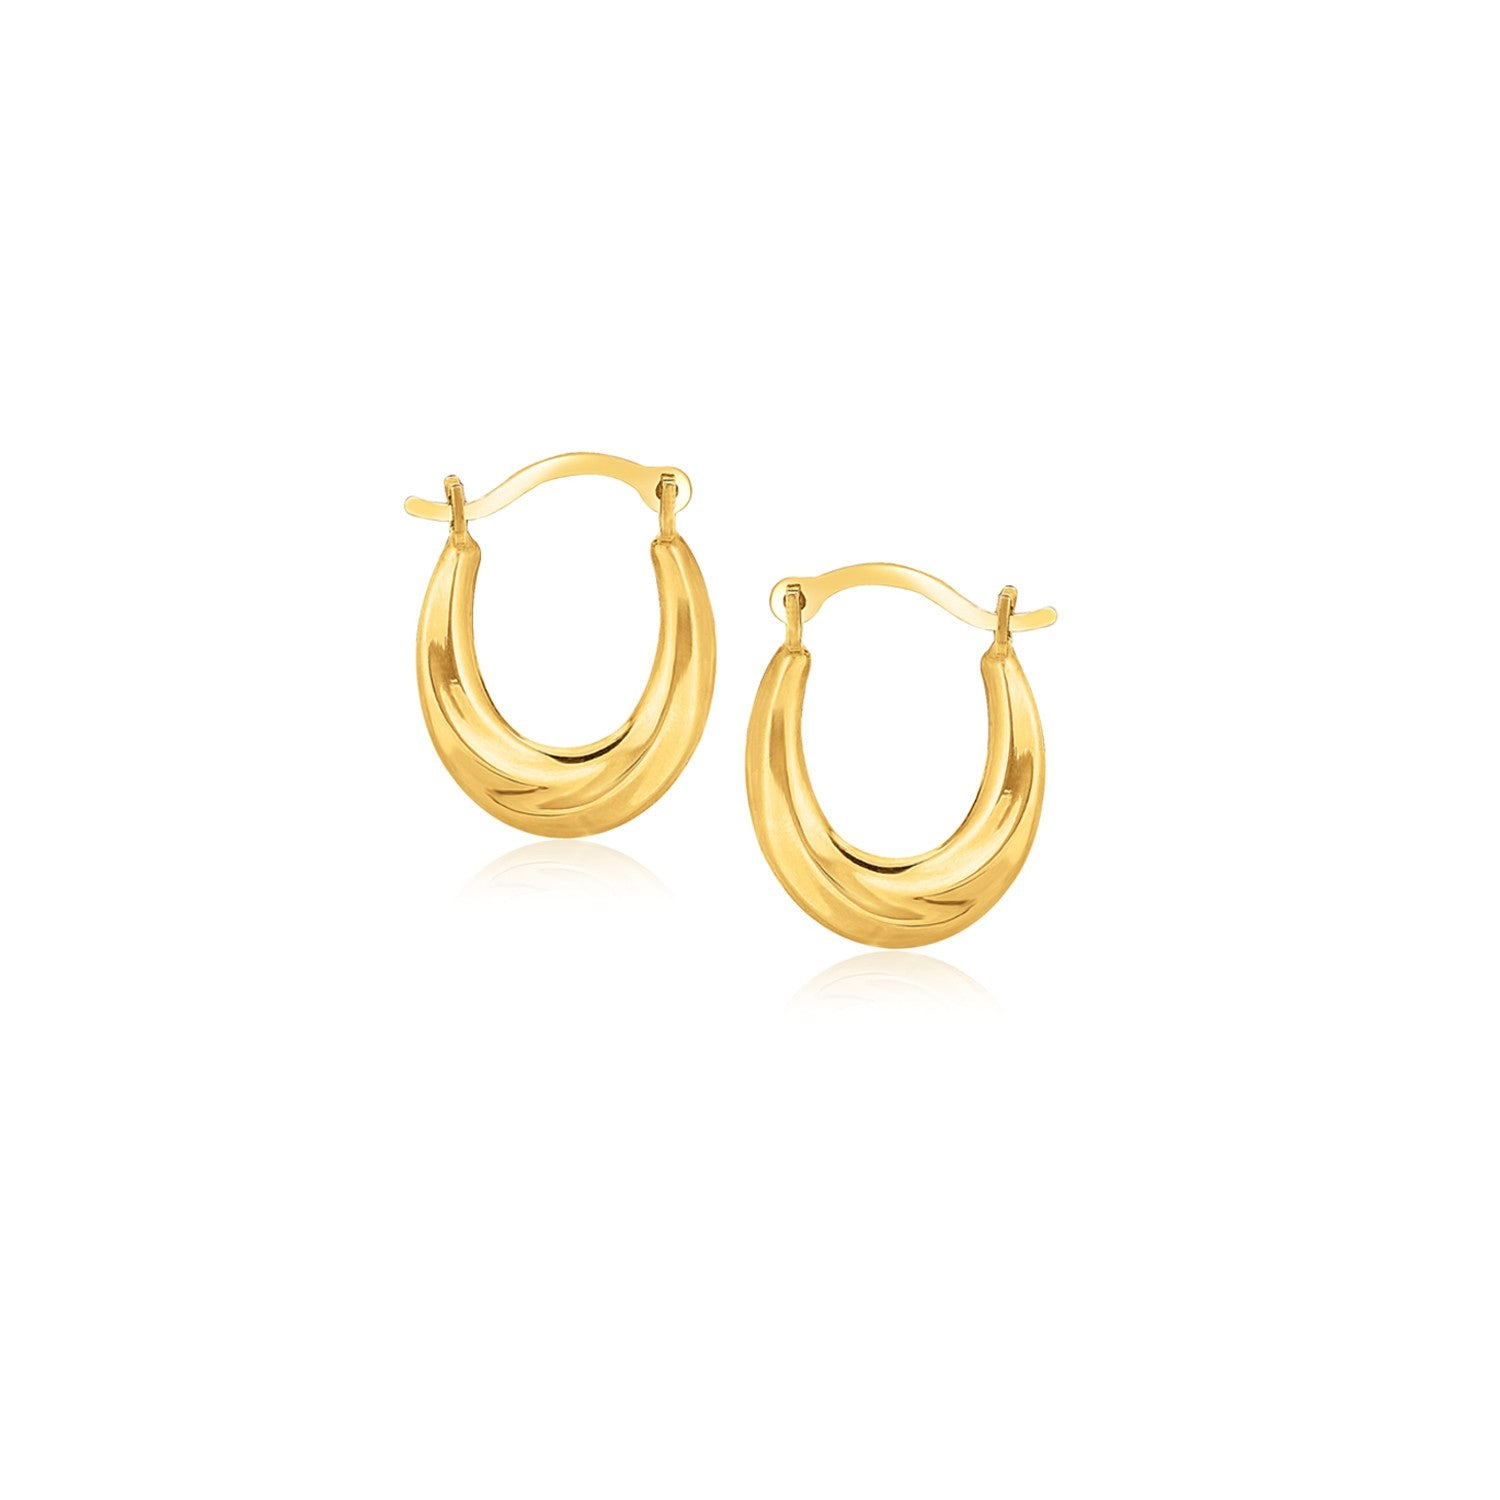 Modern Hollywood Style Classy 10K Yellow Gold Oval Hoop Earrings